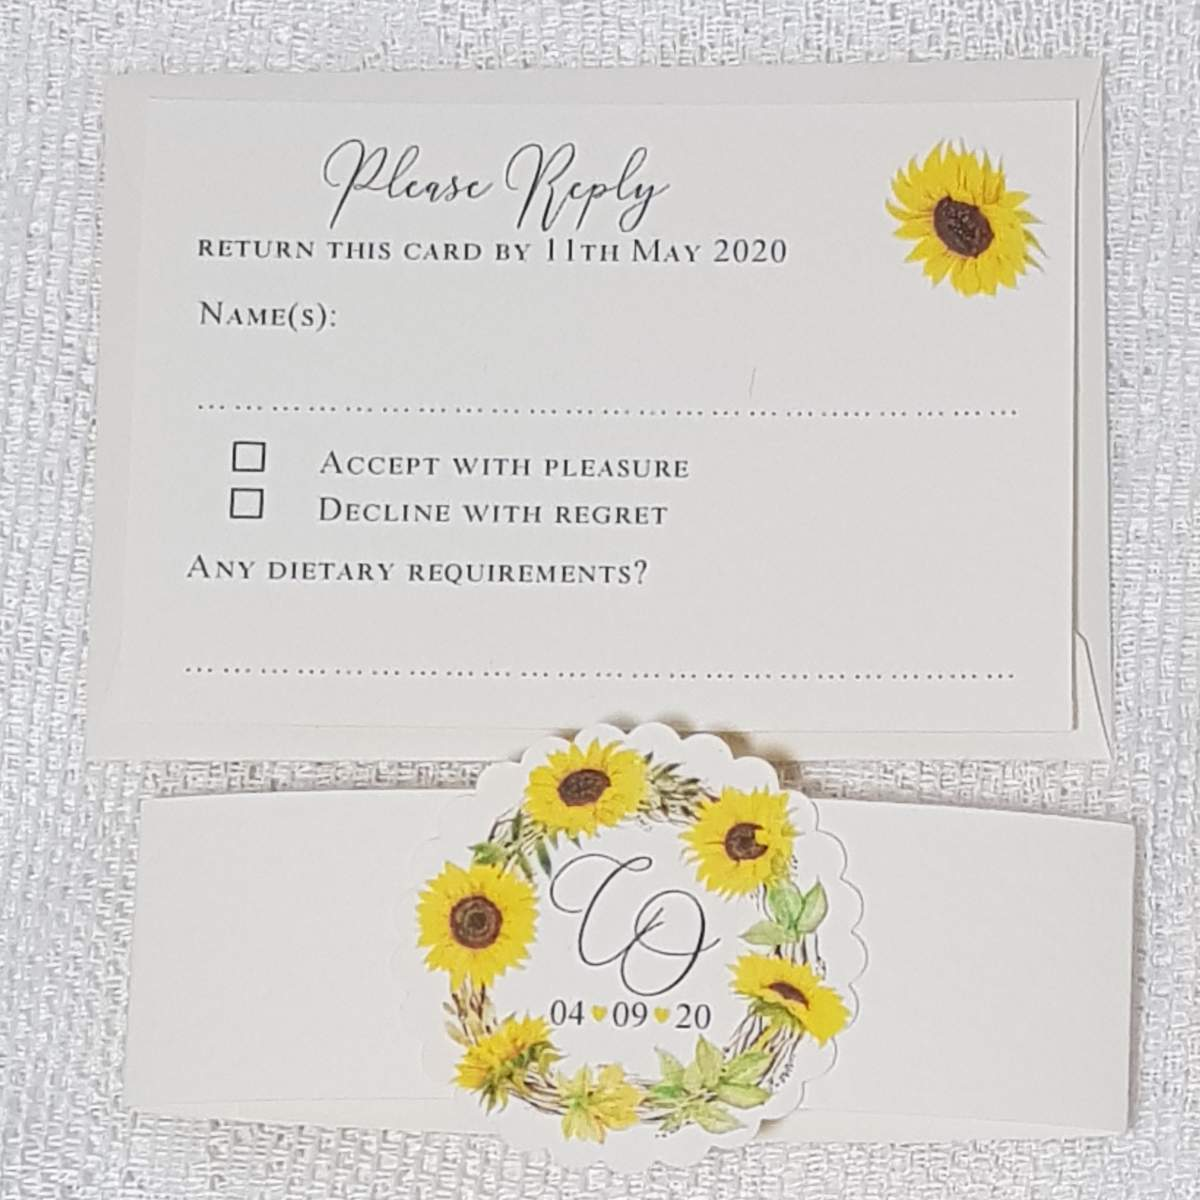 a wedding reply card with a sunflower design, alongside a matching invitation bellyband